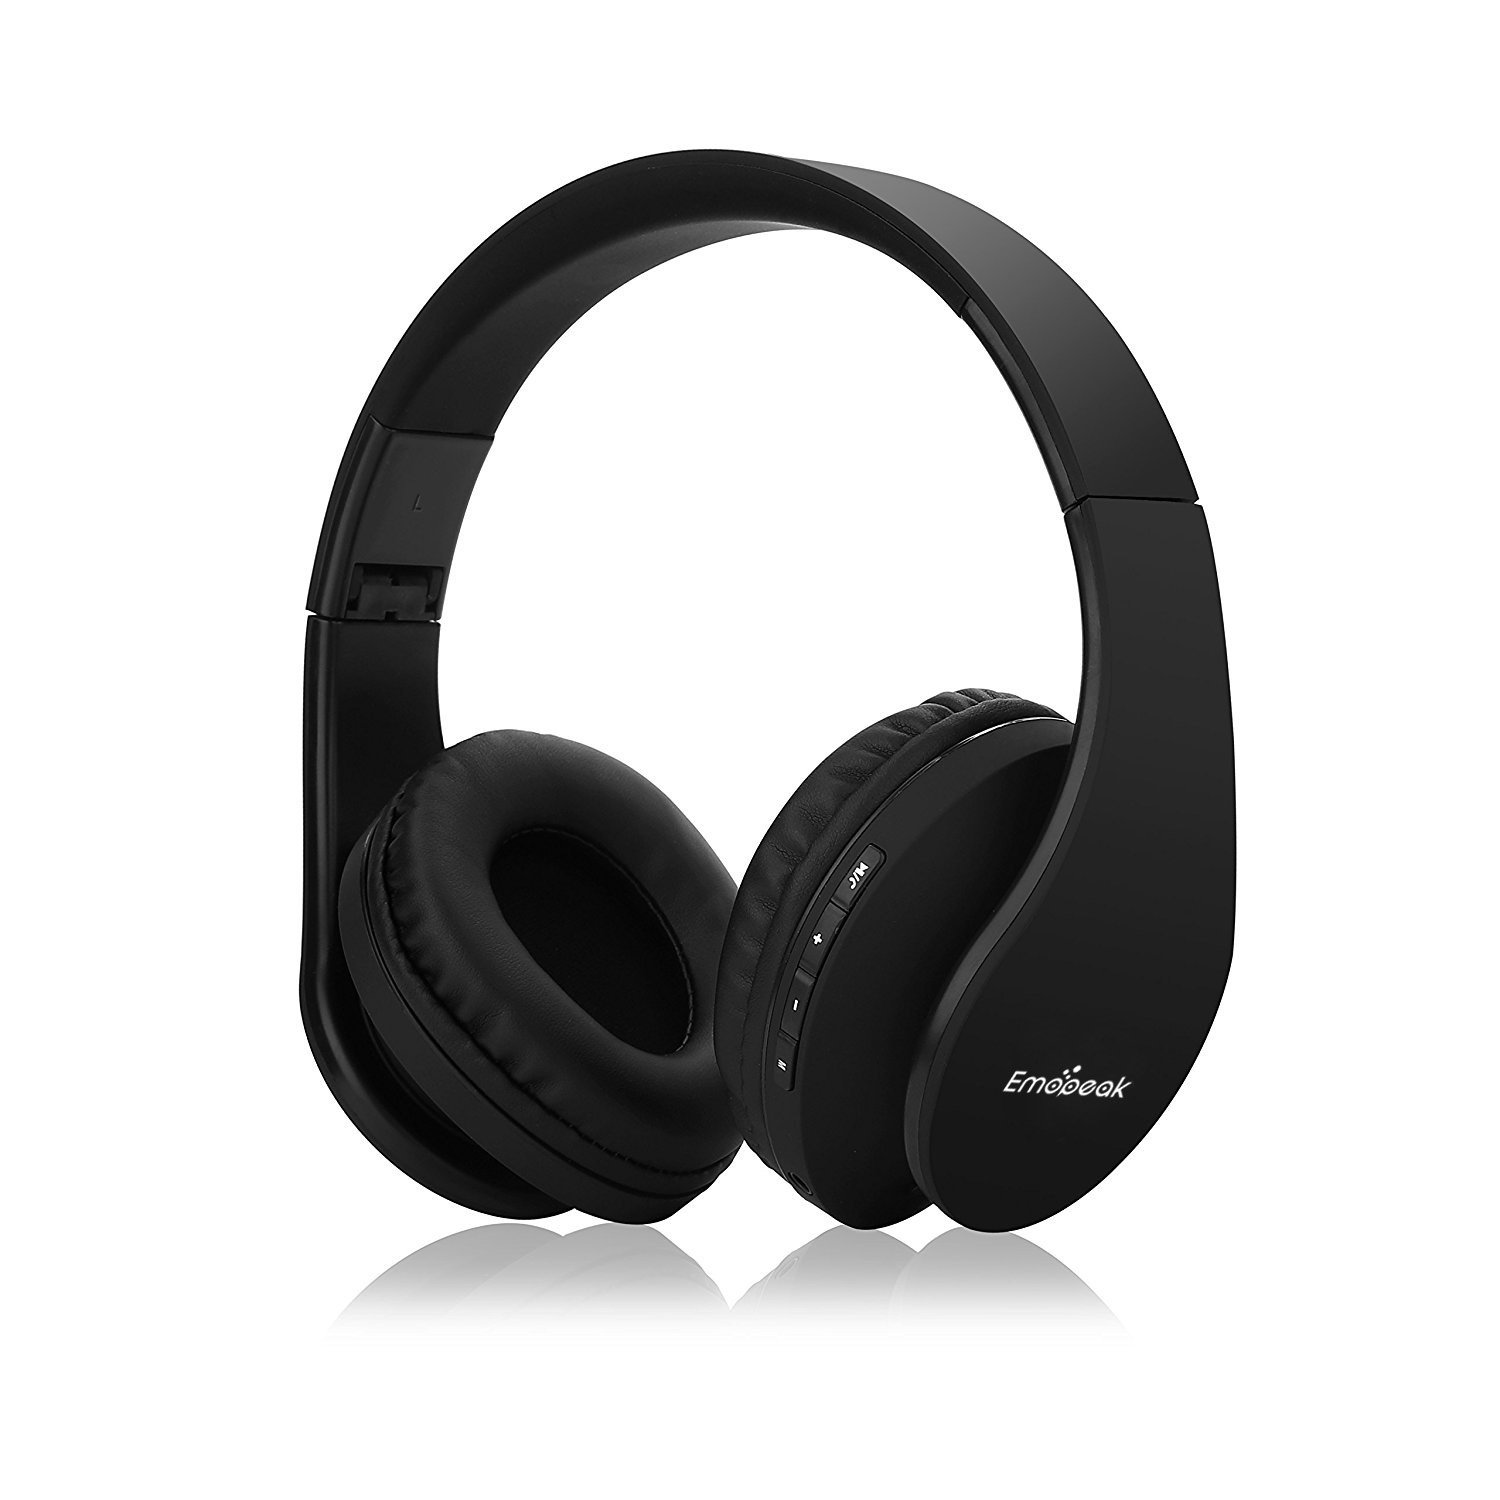 Bestipik Bluetooth Headphones Over Ear, Hi-Fi Stereo Wireless Headset, Foldable, Soft Memory-Protein Earmuffs